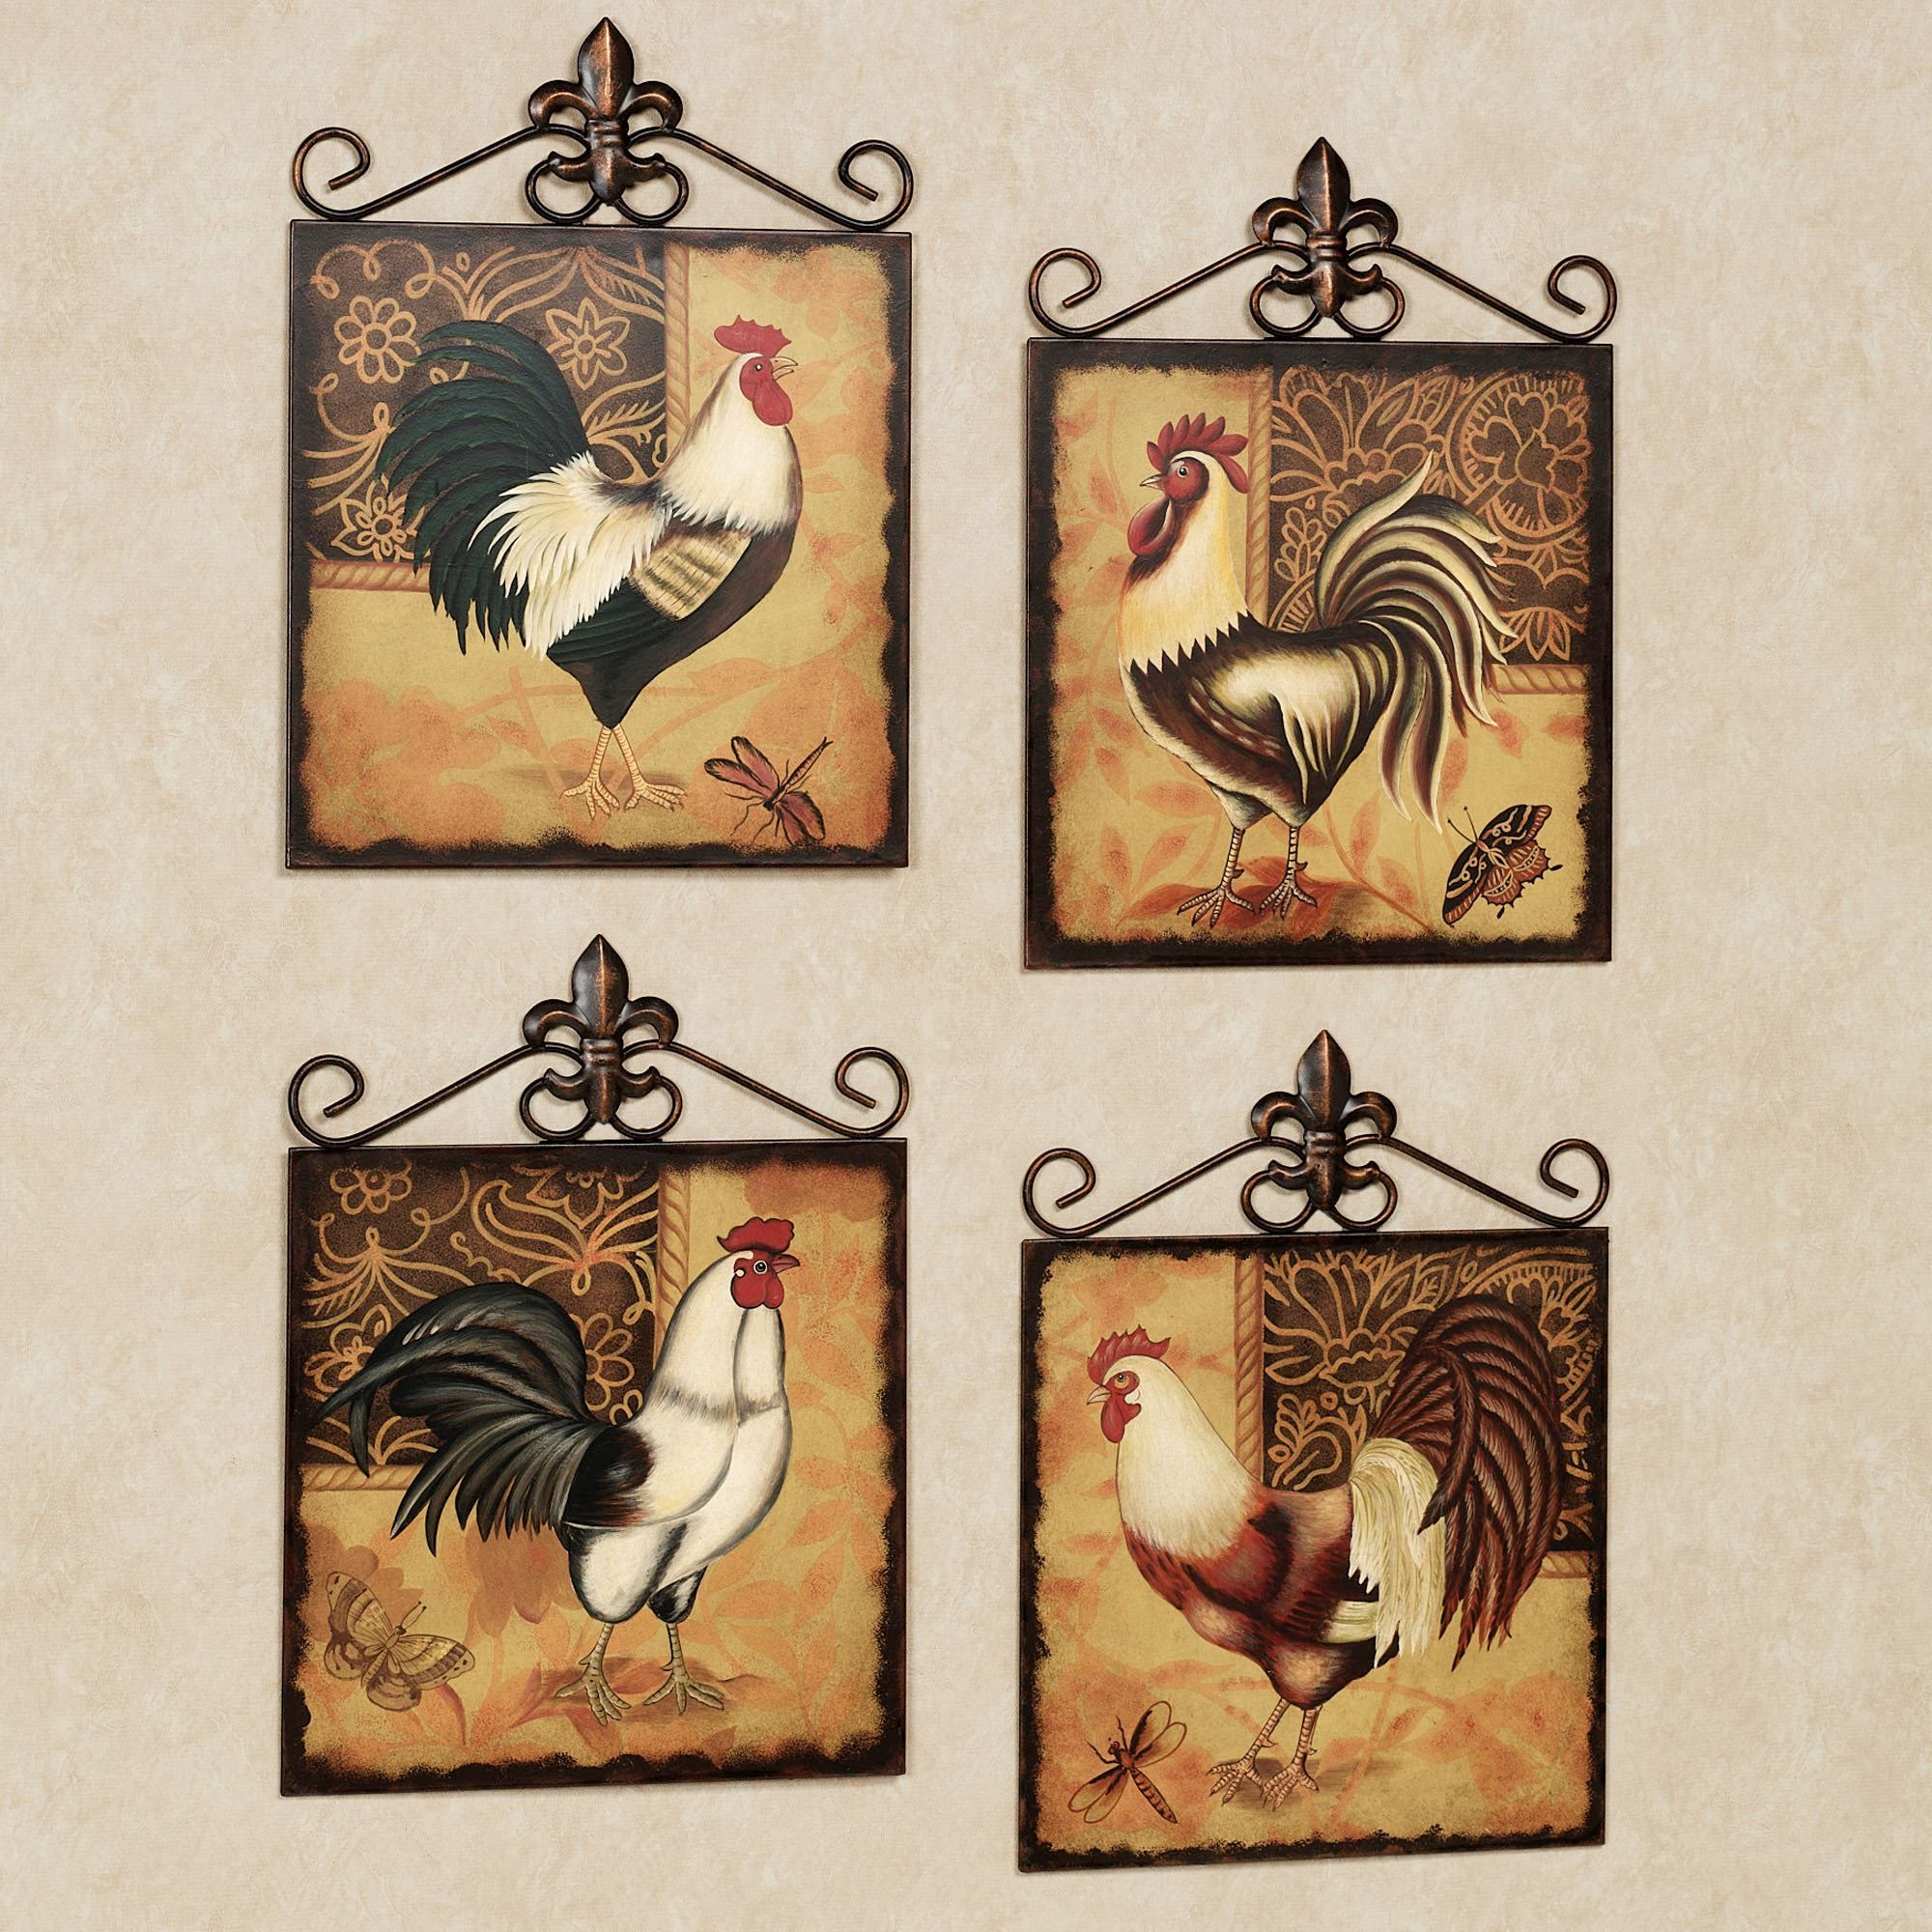 Images Roosters Pinterest Rooster Decor Pinterest Rooster Kitchen Chicken Painting Rooster Painting Rooster Rooster Kitchen Rooster Kitchen Decor Chicken Decor